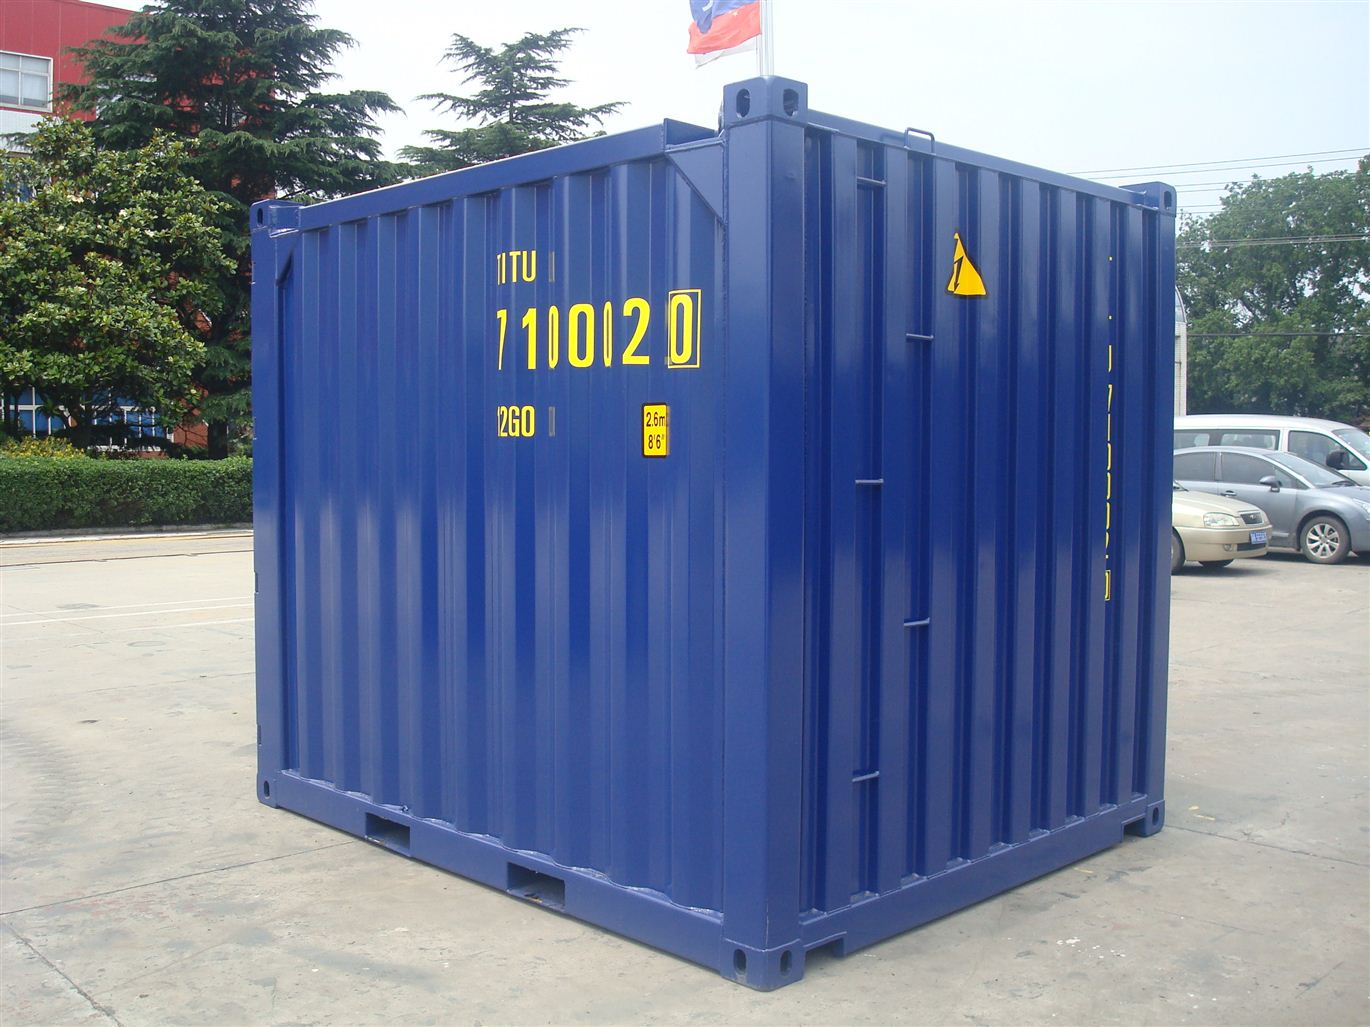 New 10ft DNV dry van containers build to DNV2.7-1 u0026 EN12079 standards u0026 ISO certified under container safety certificate for easy shipping trucking u0026 rail ... : iso storage containers  - Aquiesqueretaro.Com